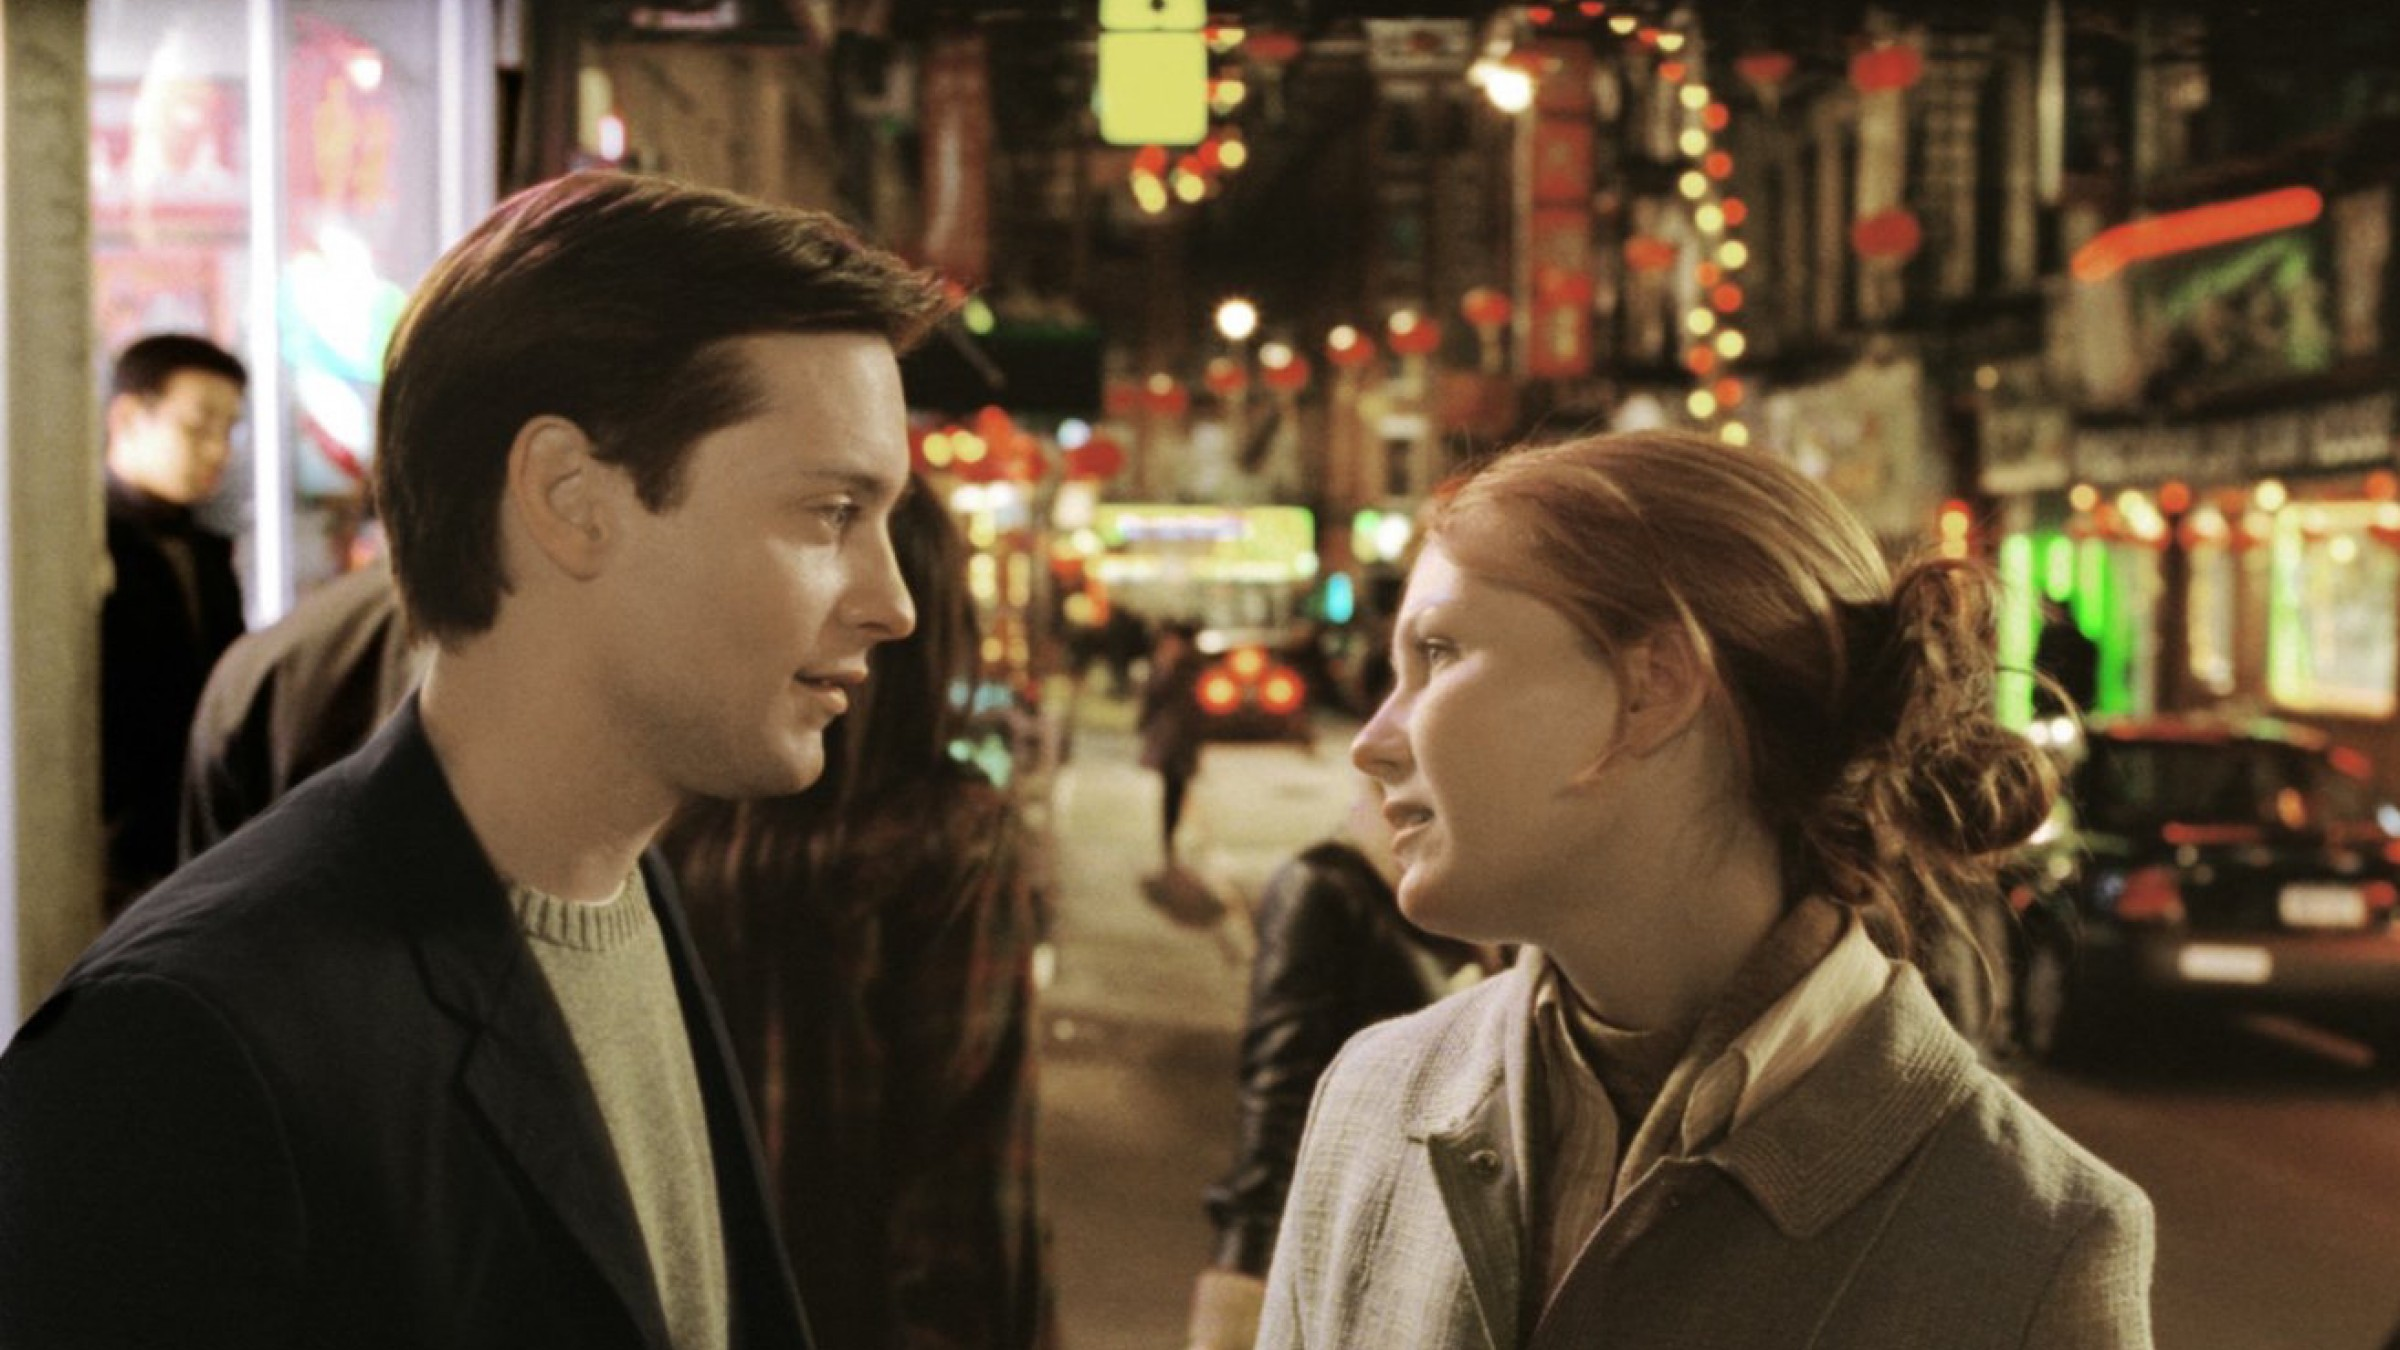 Peter Parker talking Mary Jane Watson on the streets of New York City in Spider-Man 2.